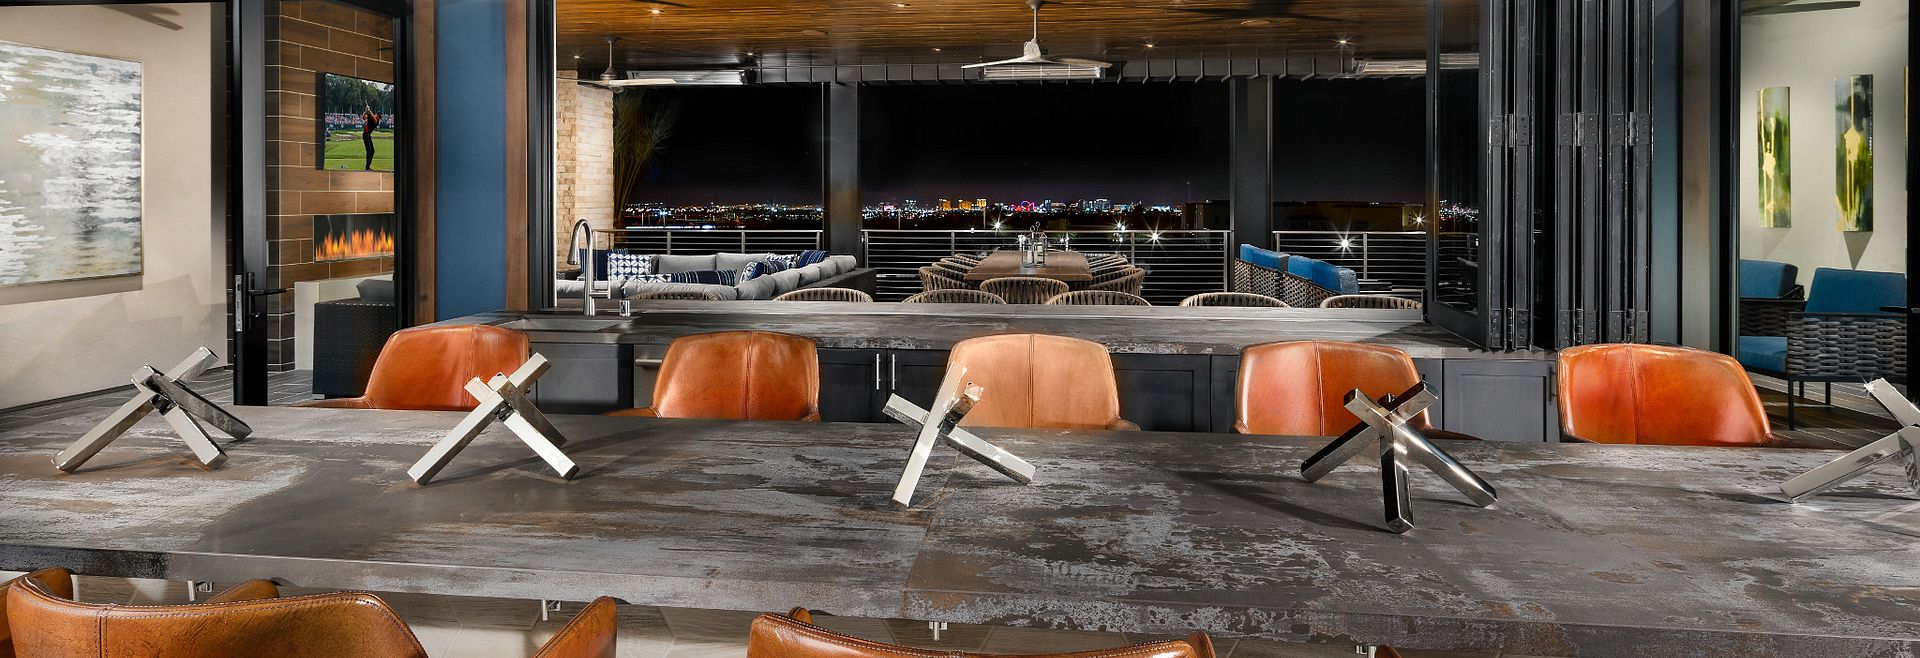 Trilogy in Summerlin The Overlook Sports Lounge